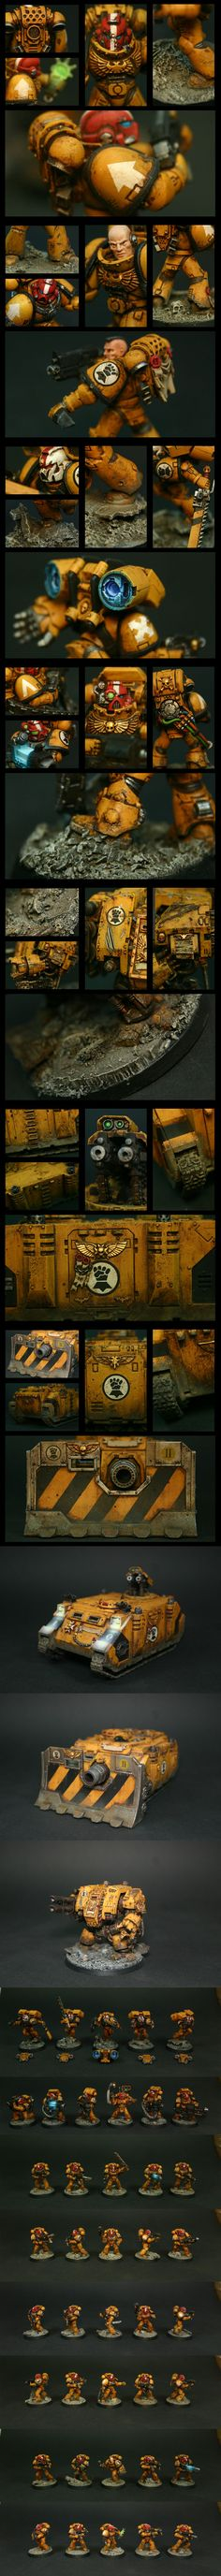 Imperial Fists Army - Correctomundo